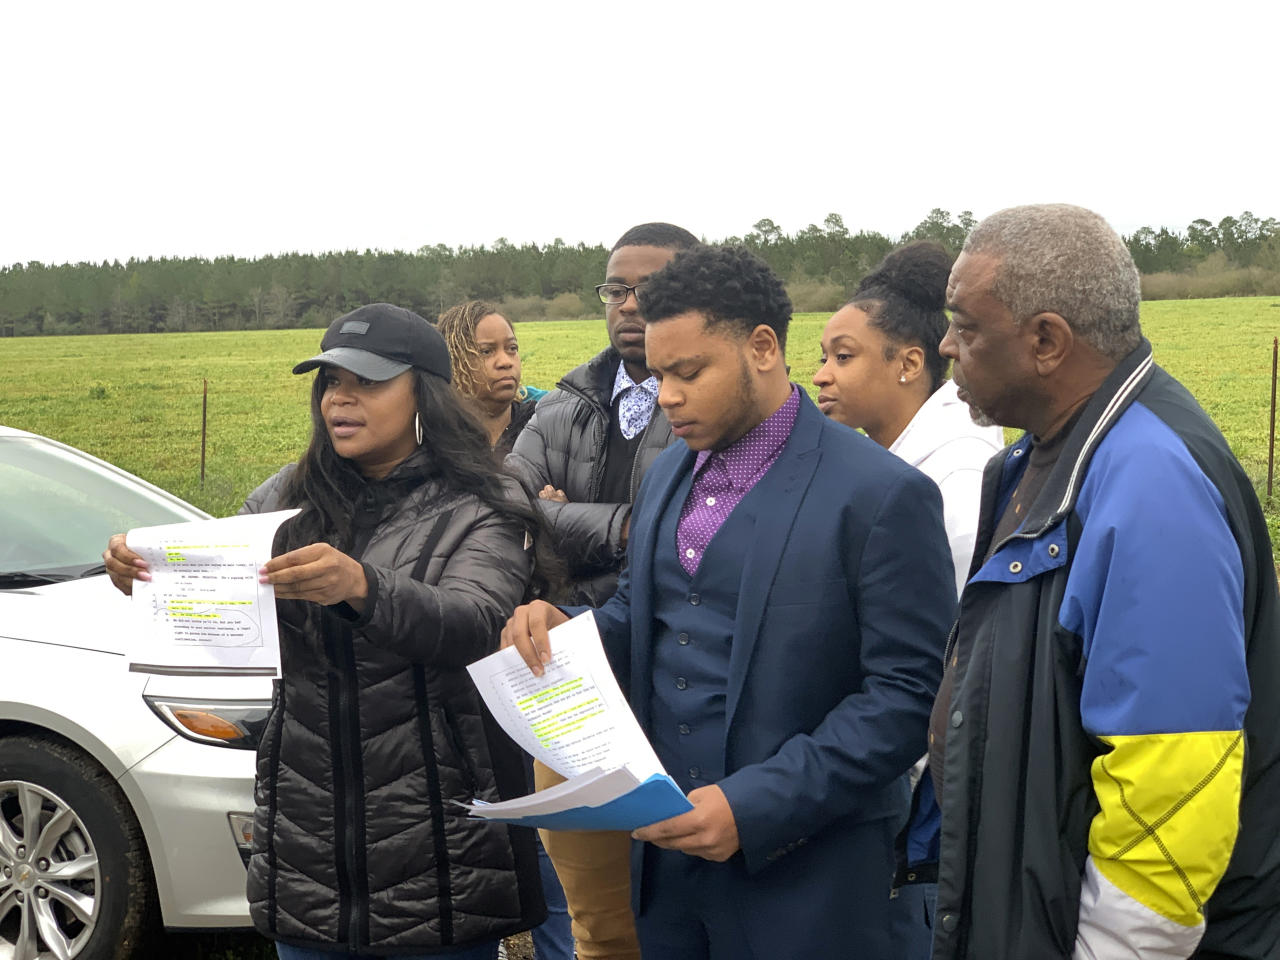 Family members of condemned Alabama inmate Nathaniel Woods speak to reporters outside Holman Correctional Facility ahead of his scheduled execution on Thursday, March 5, 2020 in Atmore, Alabama. His sister, Pamela Woods, holds a page from the trial transcript that she shows that her brother was surrendering when three police officers were shot by another man in 2004. Woods was convicted of capital murder as an accomplice in the shootings. A jury recommended the death penalty by a 10-2 vote.  (AP Photo/Kimberly Chandler)